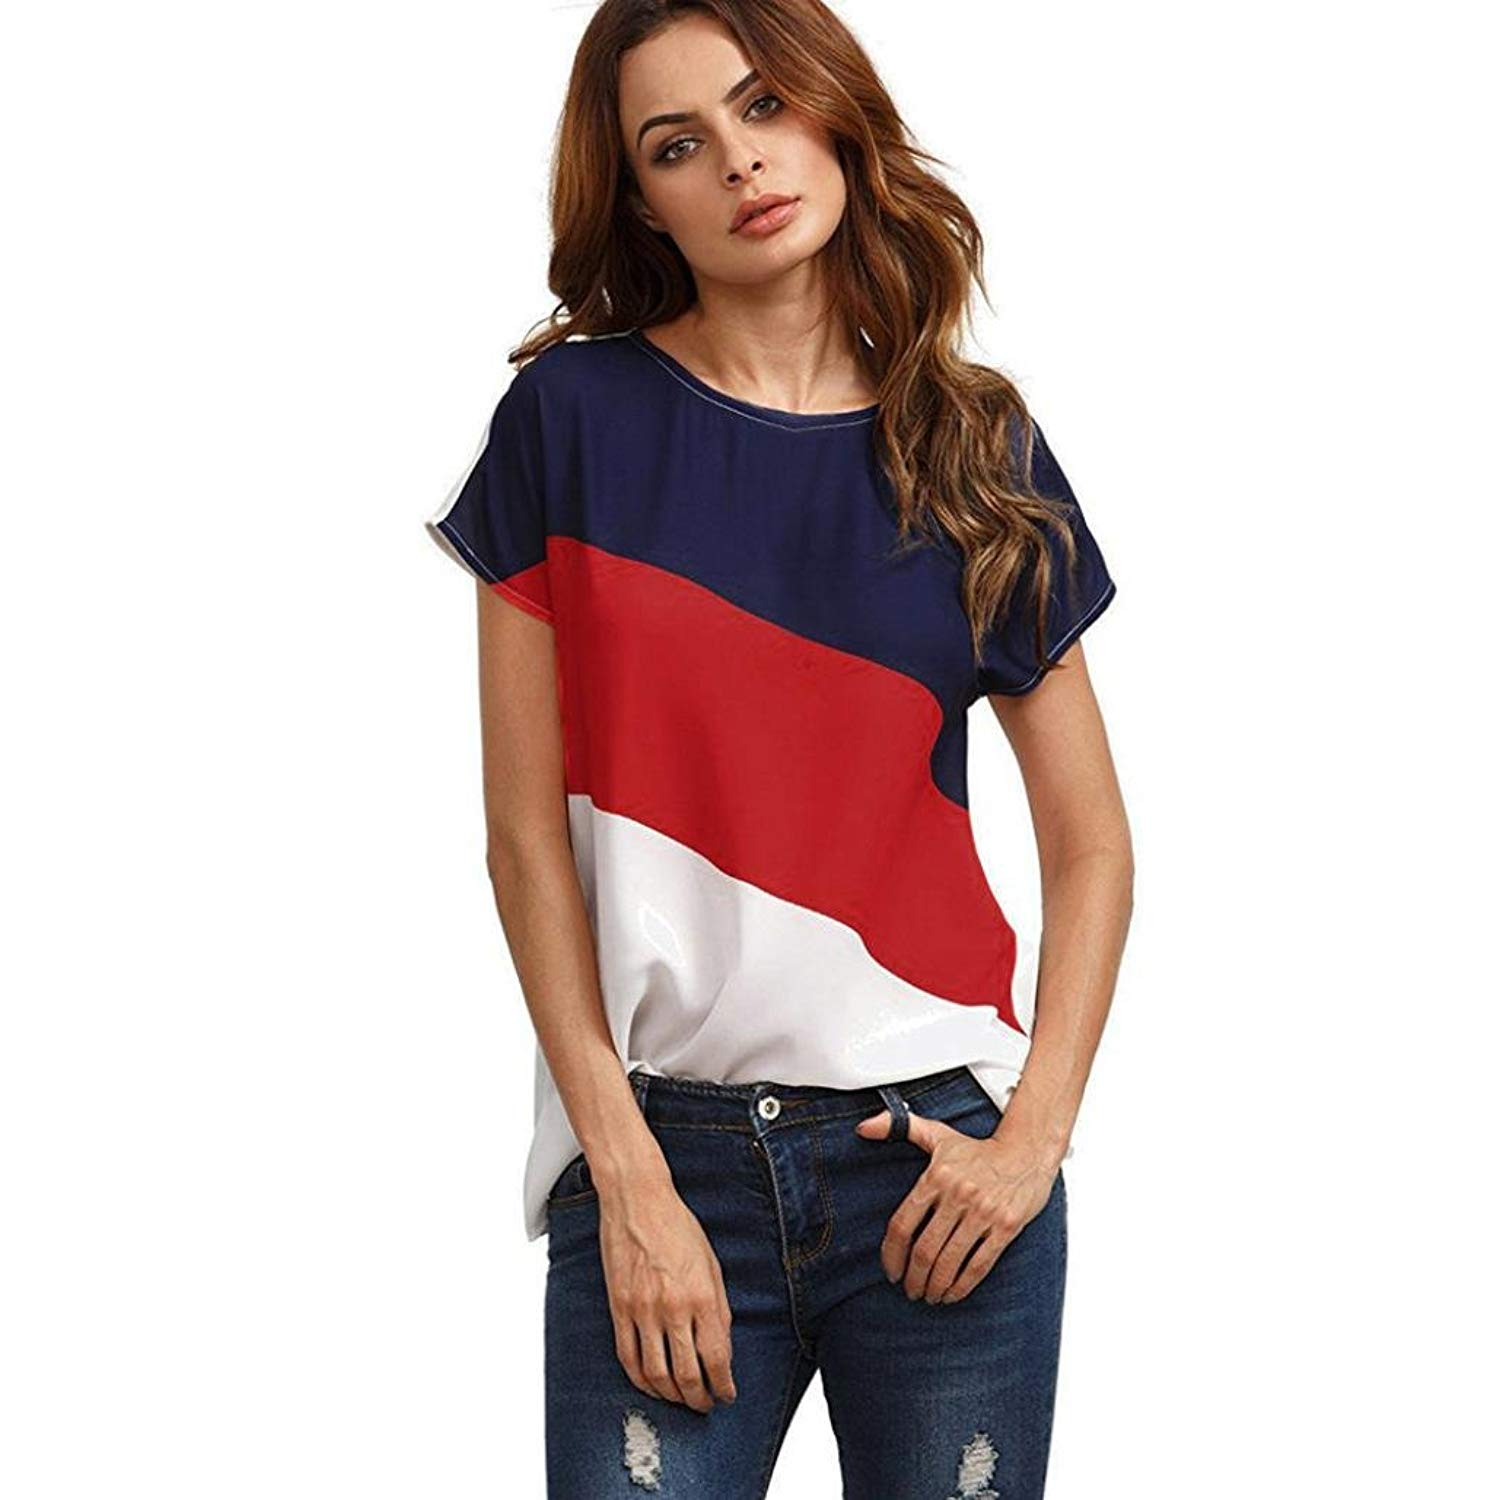 SCSAlgin Women Blouse Women's Color Block Blouse Short Sleeve Casual Tee Shirts Tunic Tops